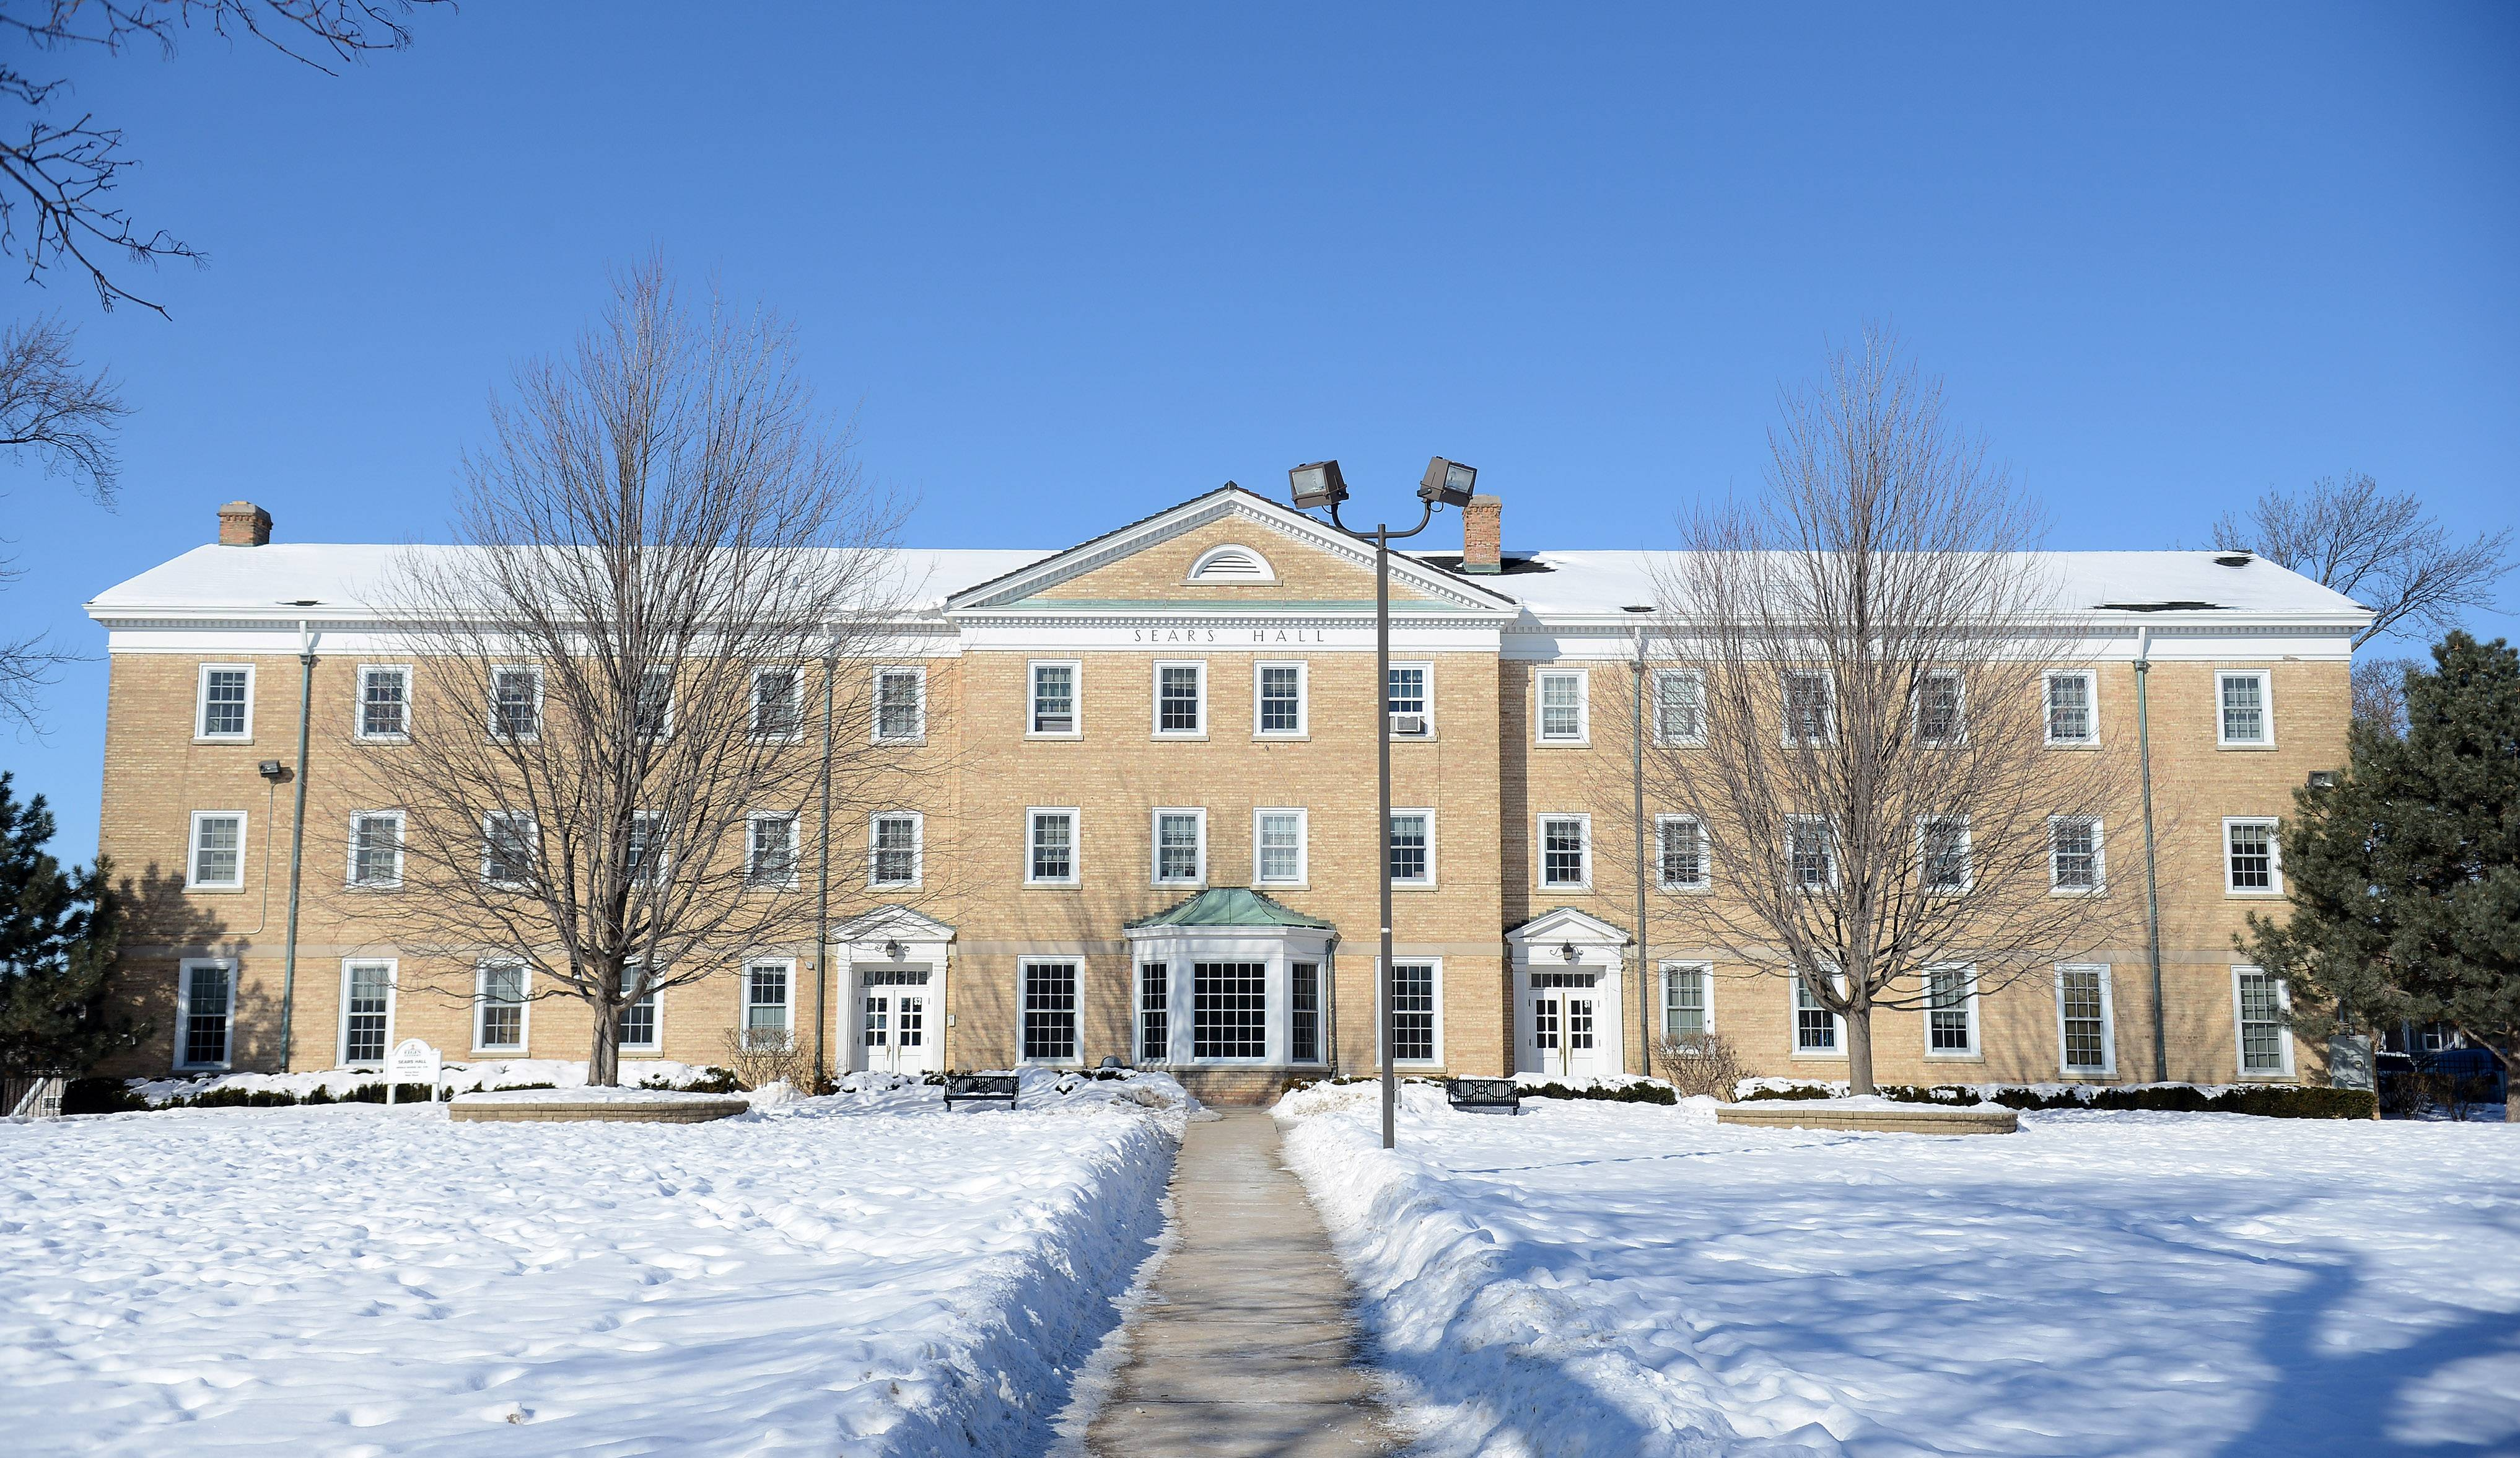 Sears Hall on the Elgin Academy campus, which marks its 175th anniversary this month.